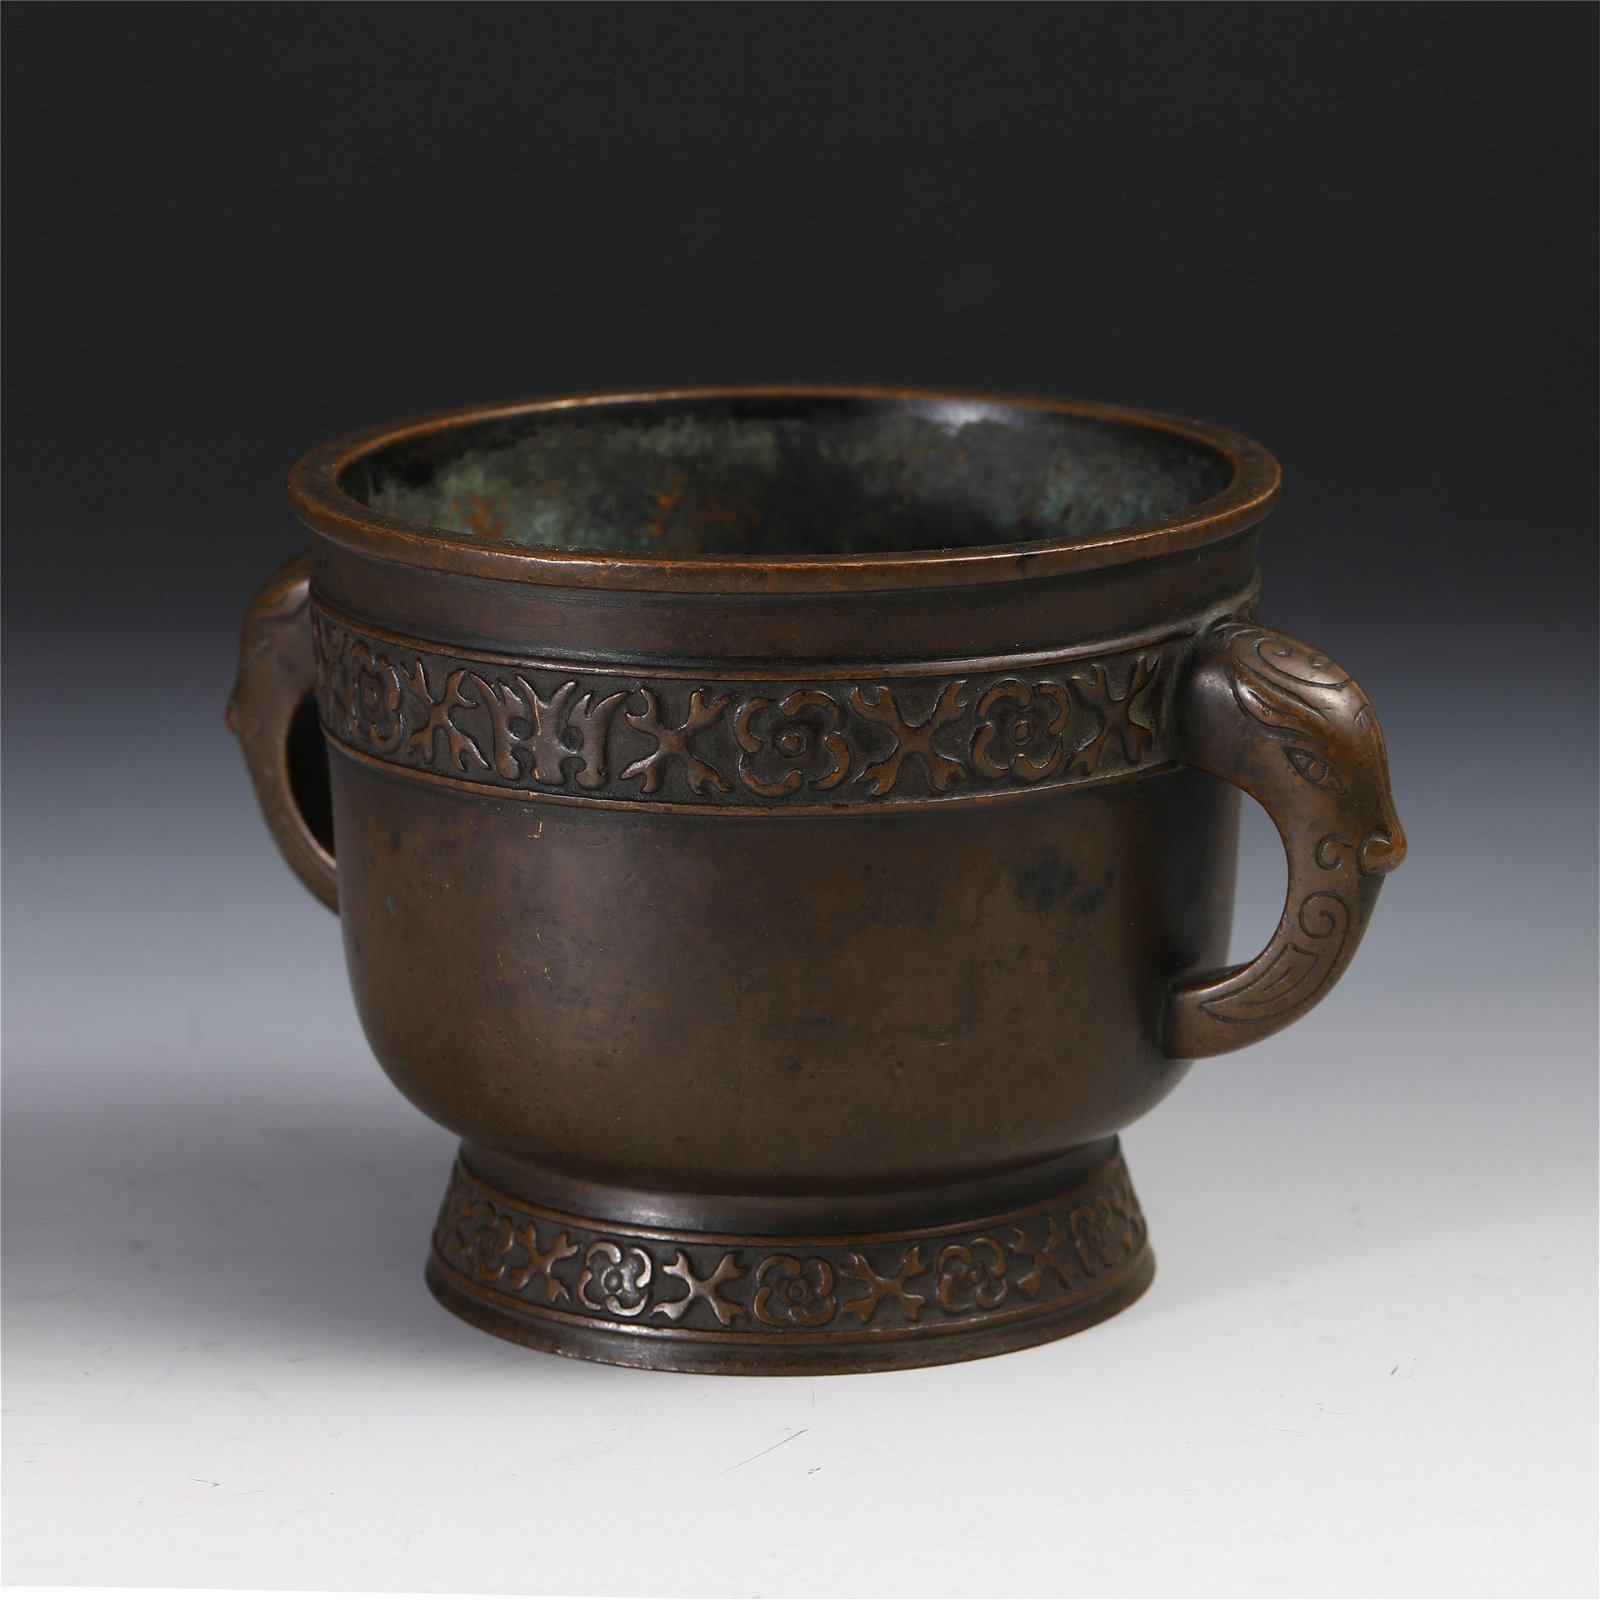 CHINESE BRONZE HANDLED ROUND CENSER